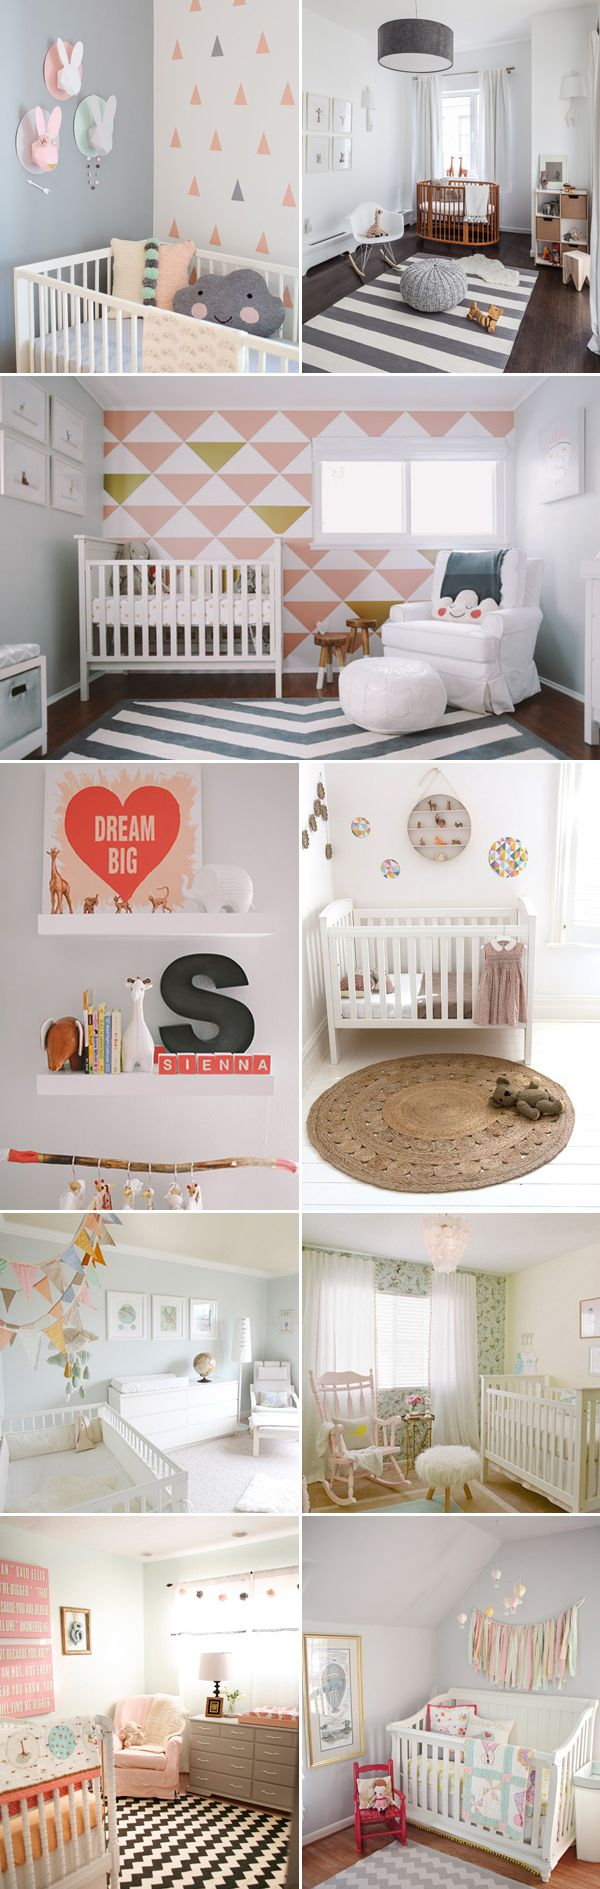 Top left corner walls in blue tints  Nusery-Rooms-01-adorable